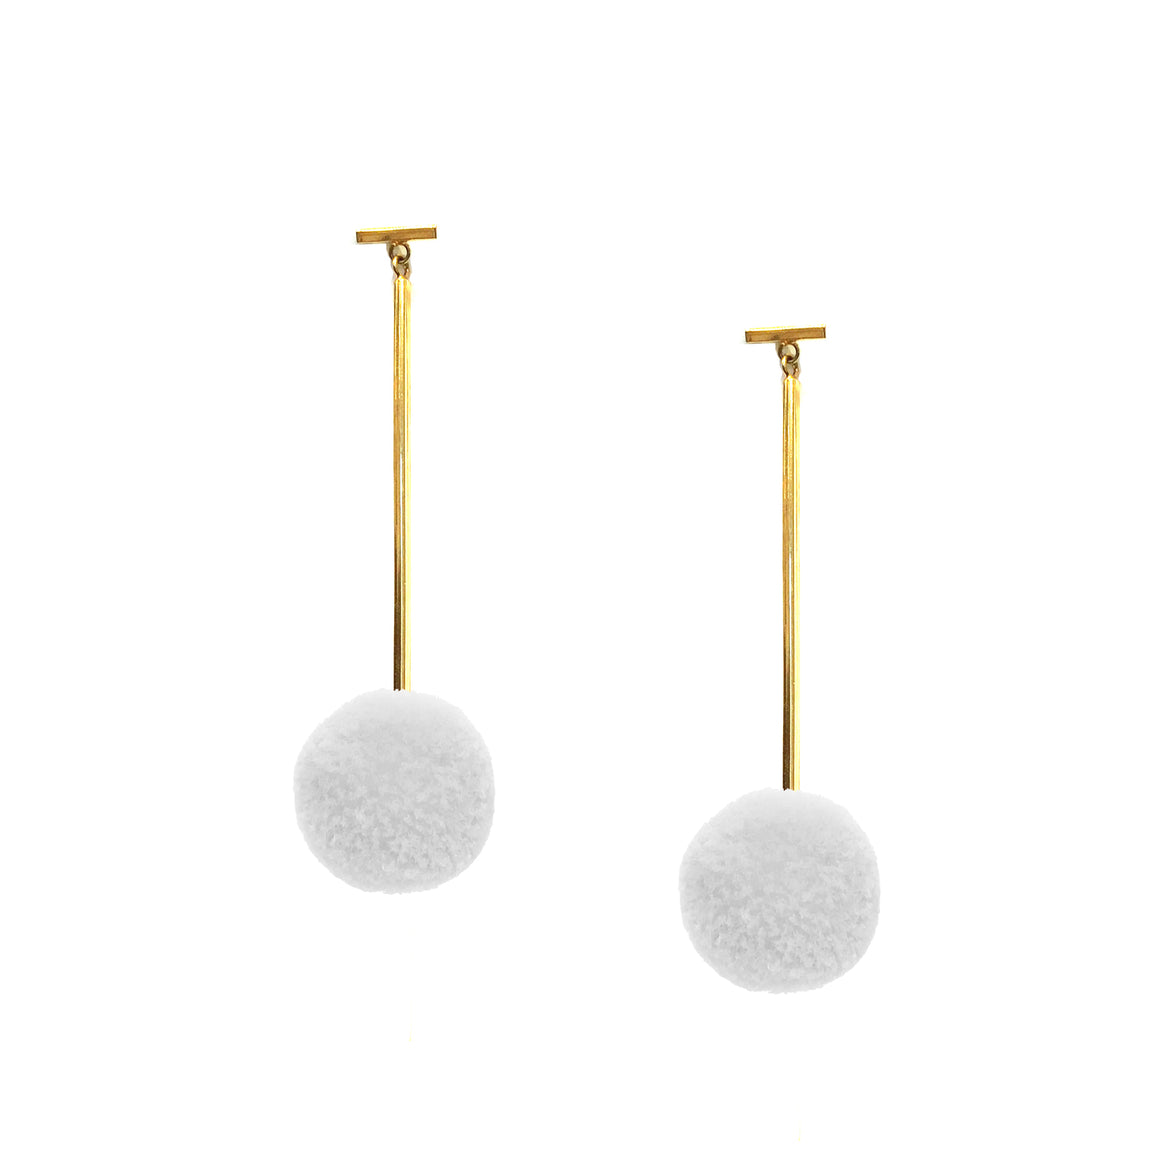 "White 3/4"" Velvet Pom Pom T Bar Earring"